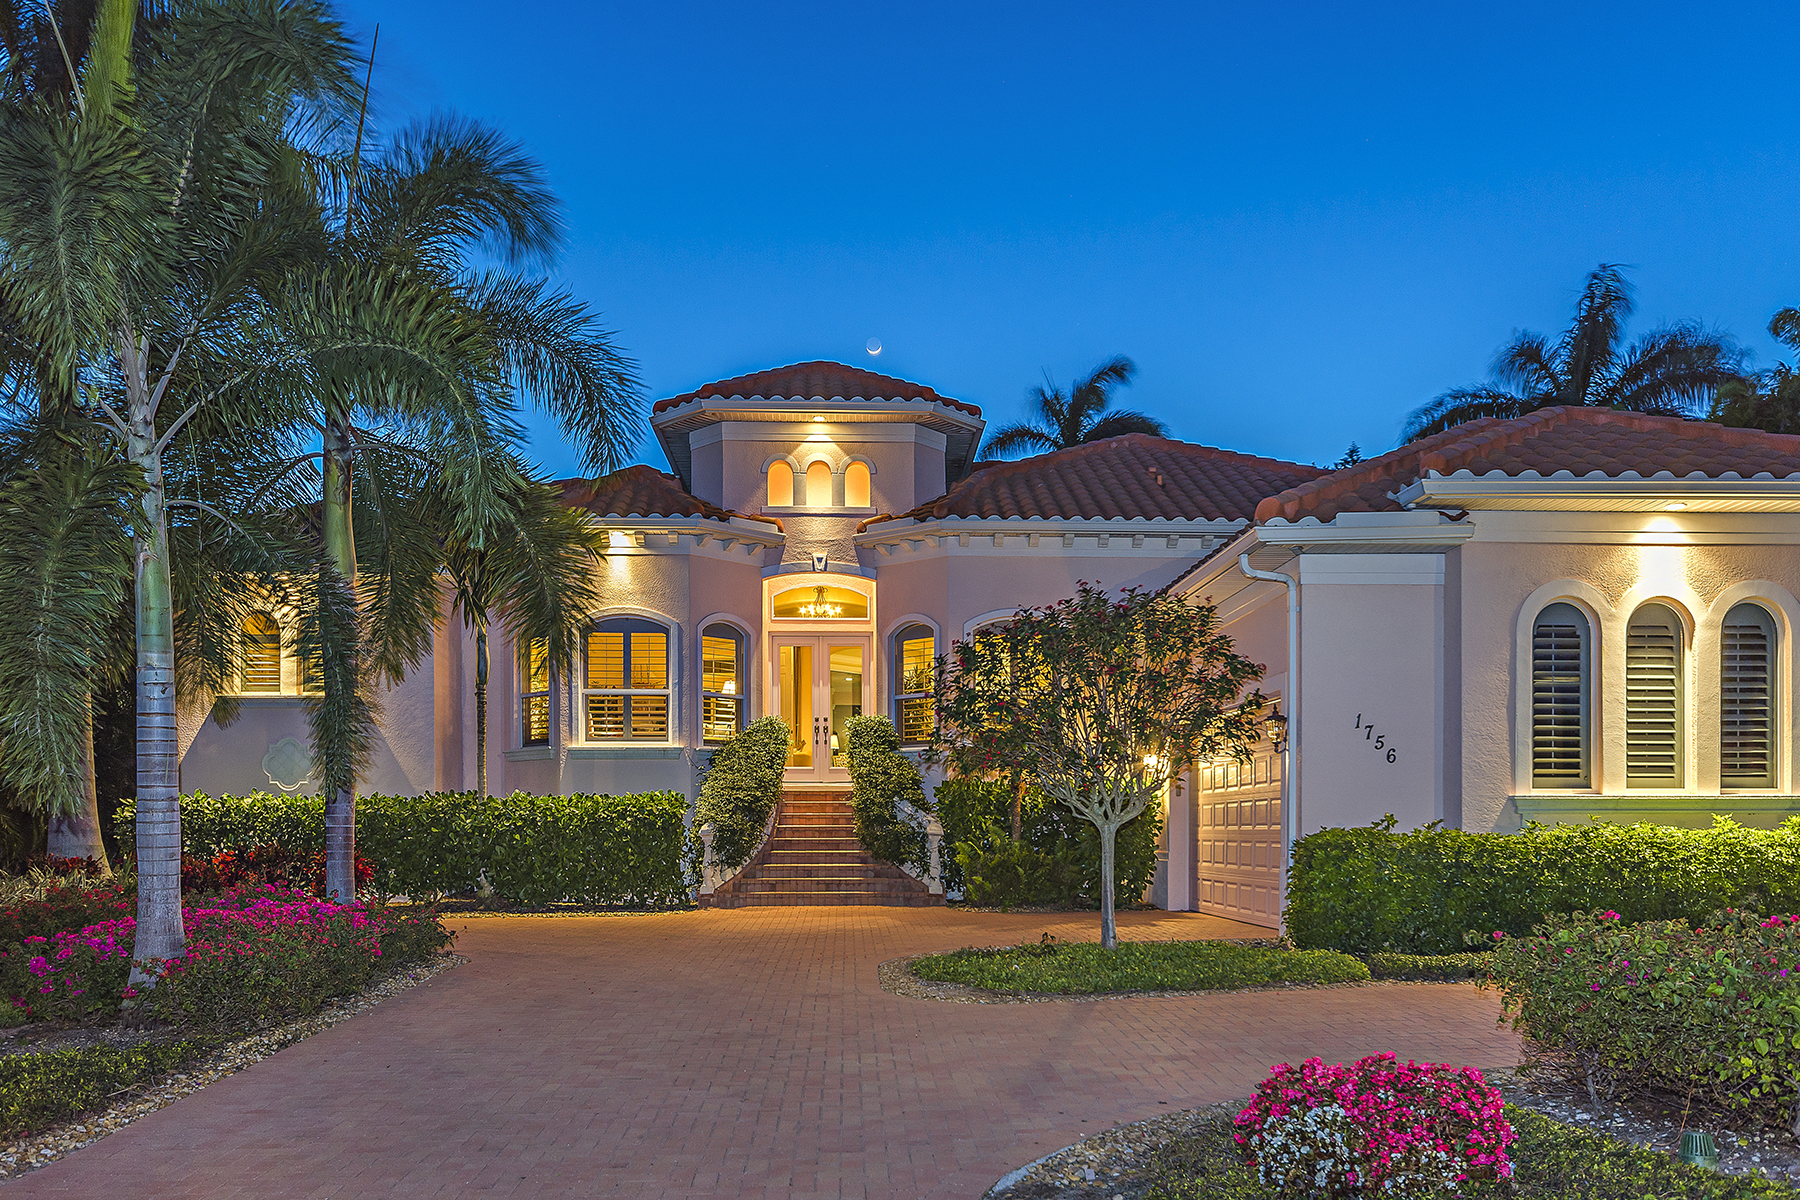 Single Family Home for Sale at AQUALANE SHORES 1756 3rd St S, Naples, Florida 34102 United States